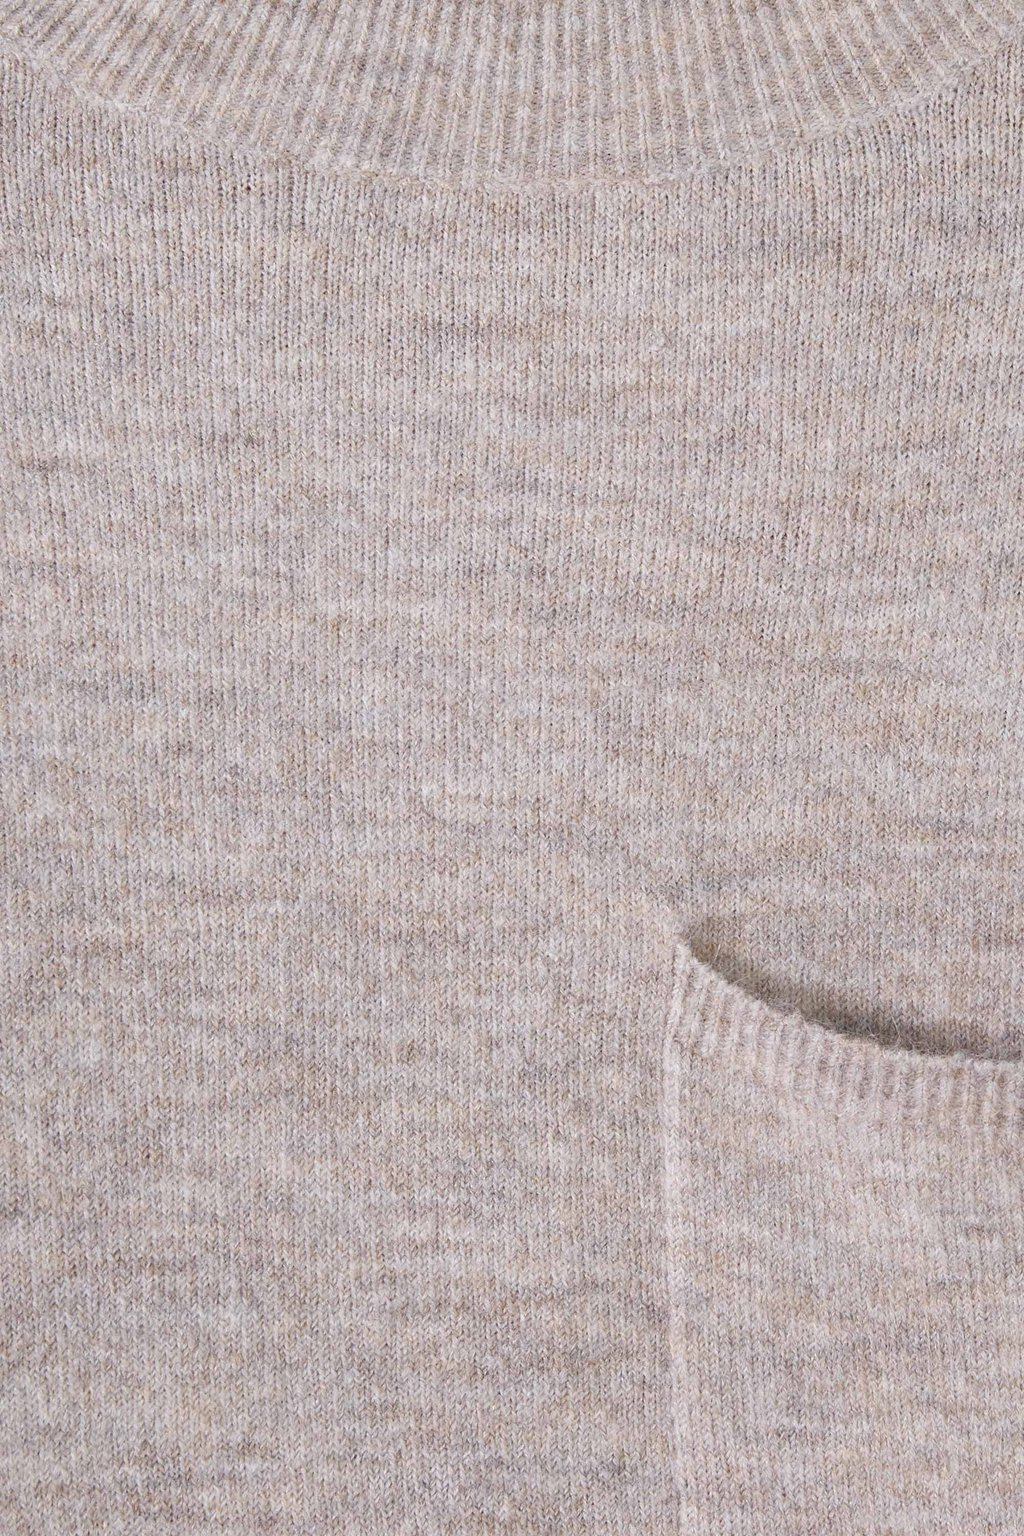 Sweater 2406 Taupe 6